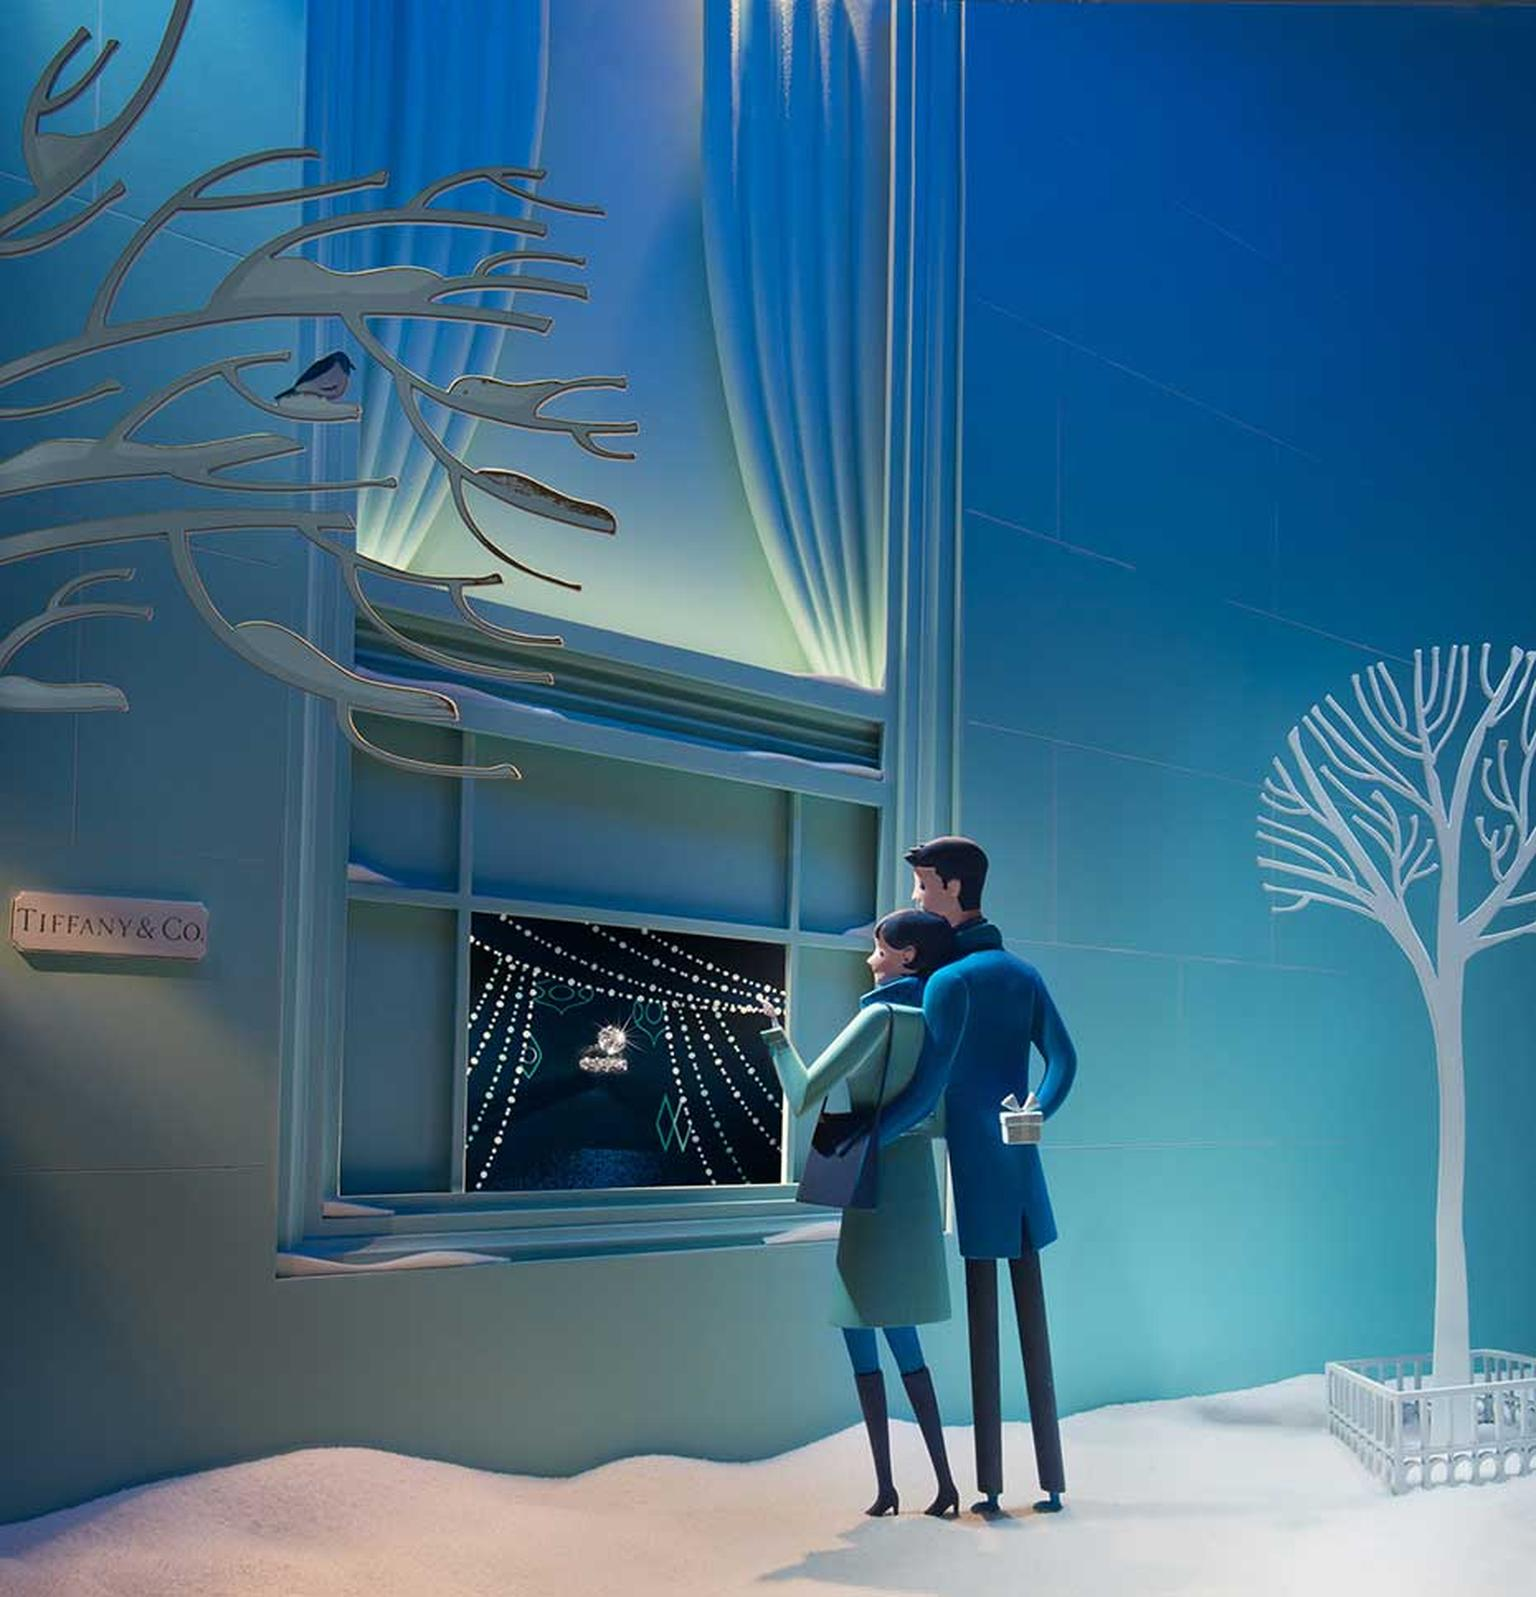 Tiffany is famous for its Christmas windows, and this year the Tiffany boutique on Bond Street has taken inspiration from New York with displays depicting stylishly festive scenes in the Big Apple, inspired by the glamour of the 1950s and 60s.